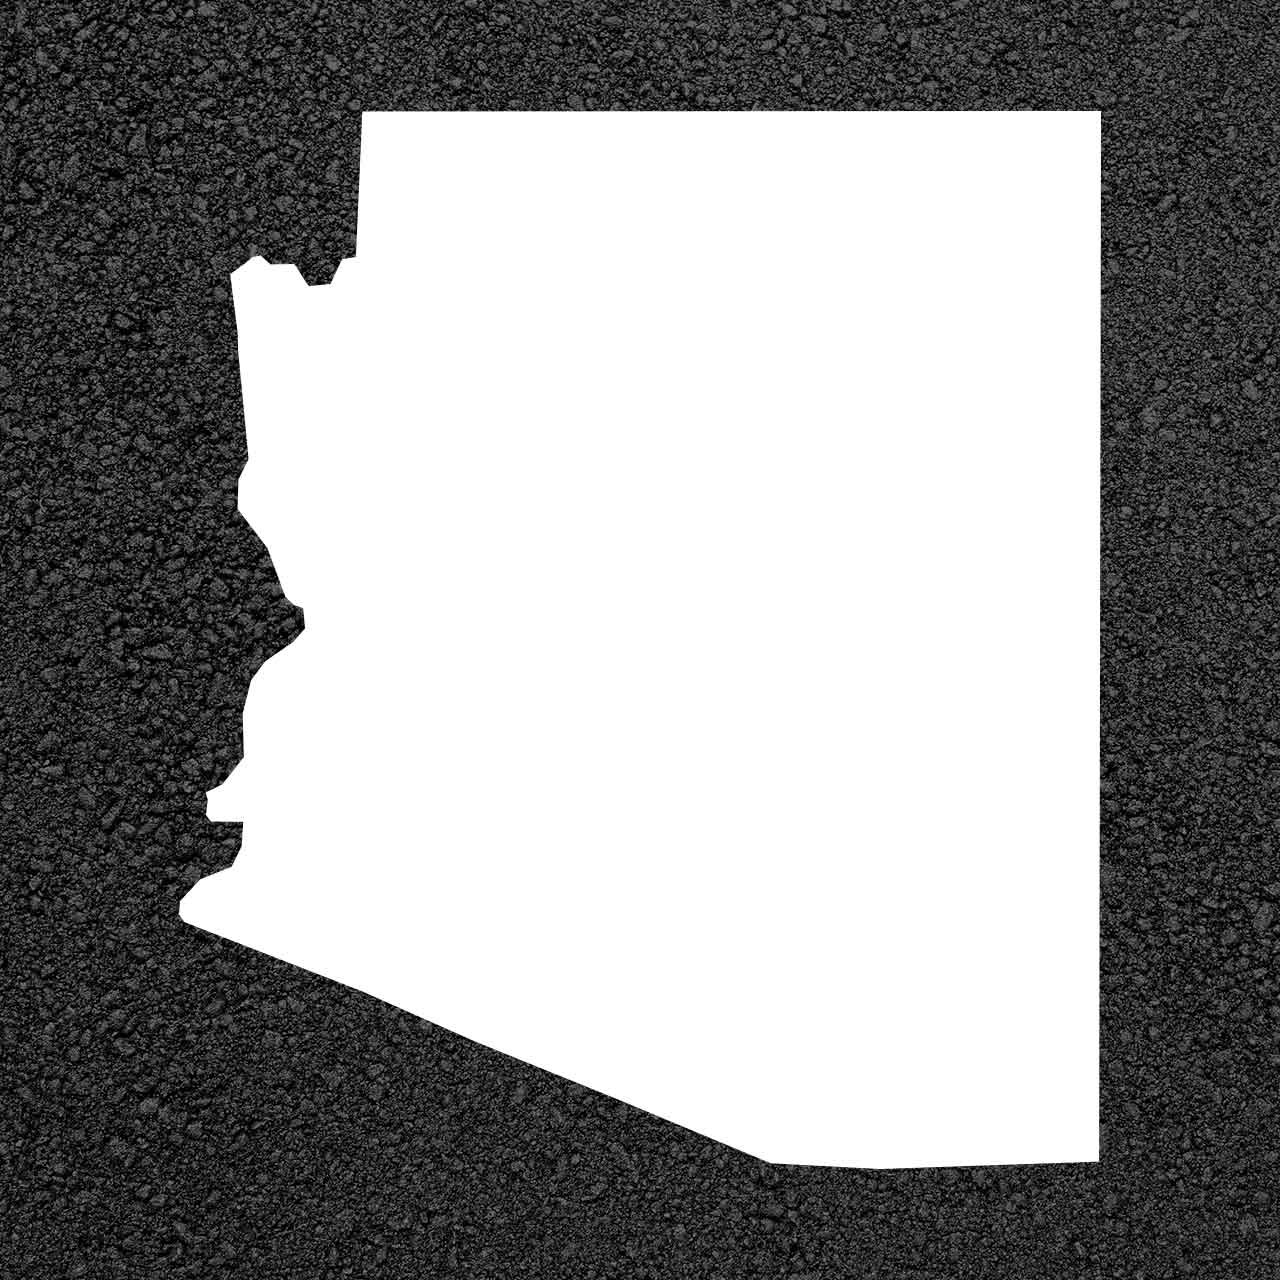 A Map Of Arizona State.Arizona State Map Stencil